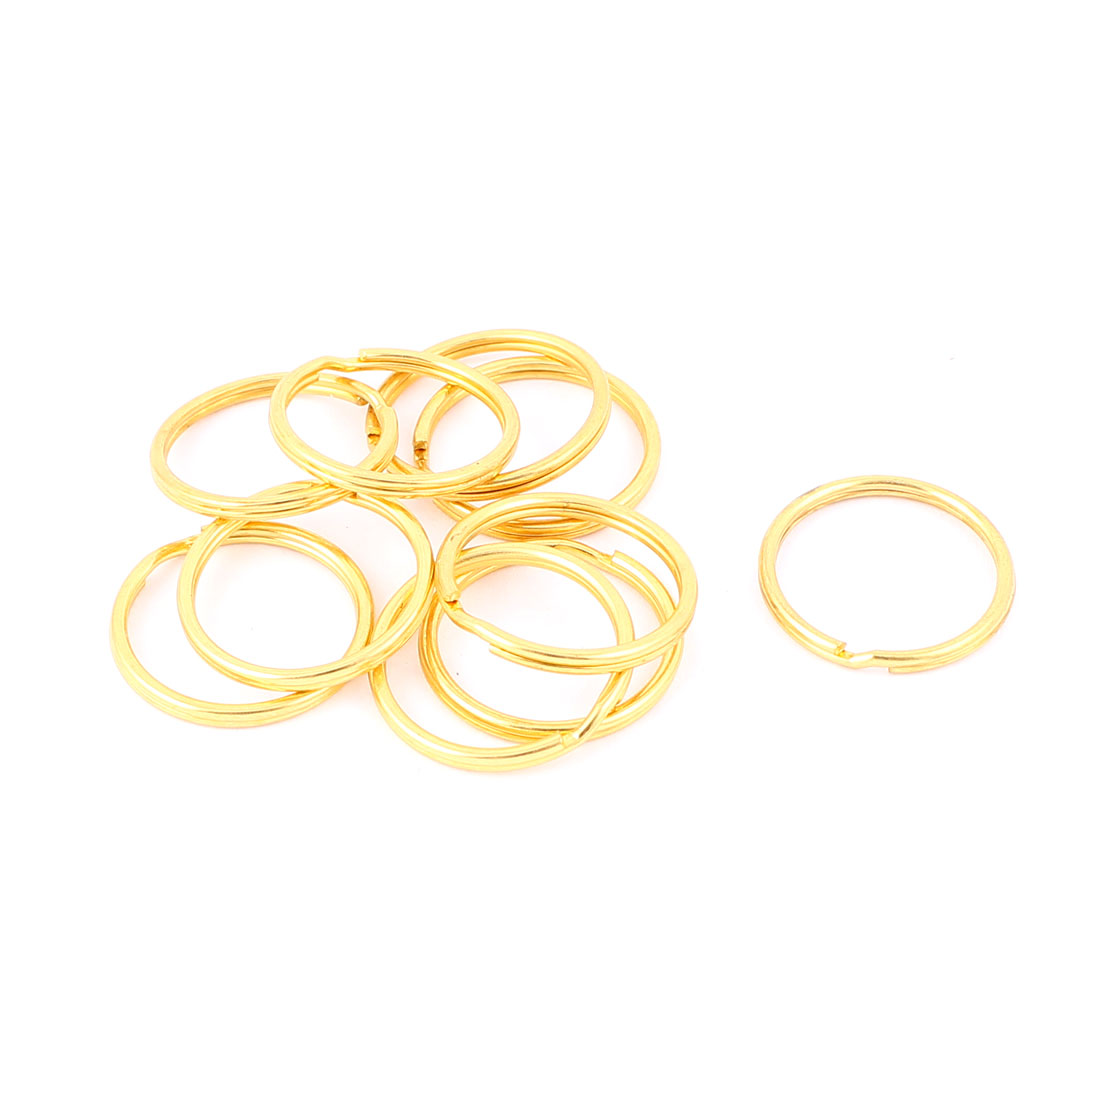 "10 PCS Gold Tone 0.9"" Dia Metal Rings Replacement Split Loop Keyring Keys Holder"